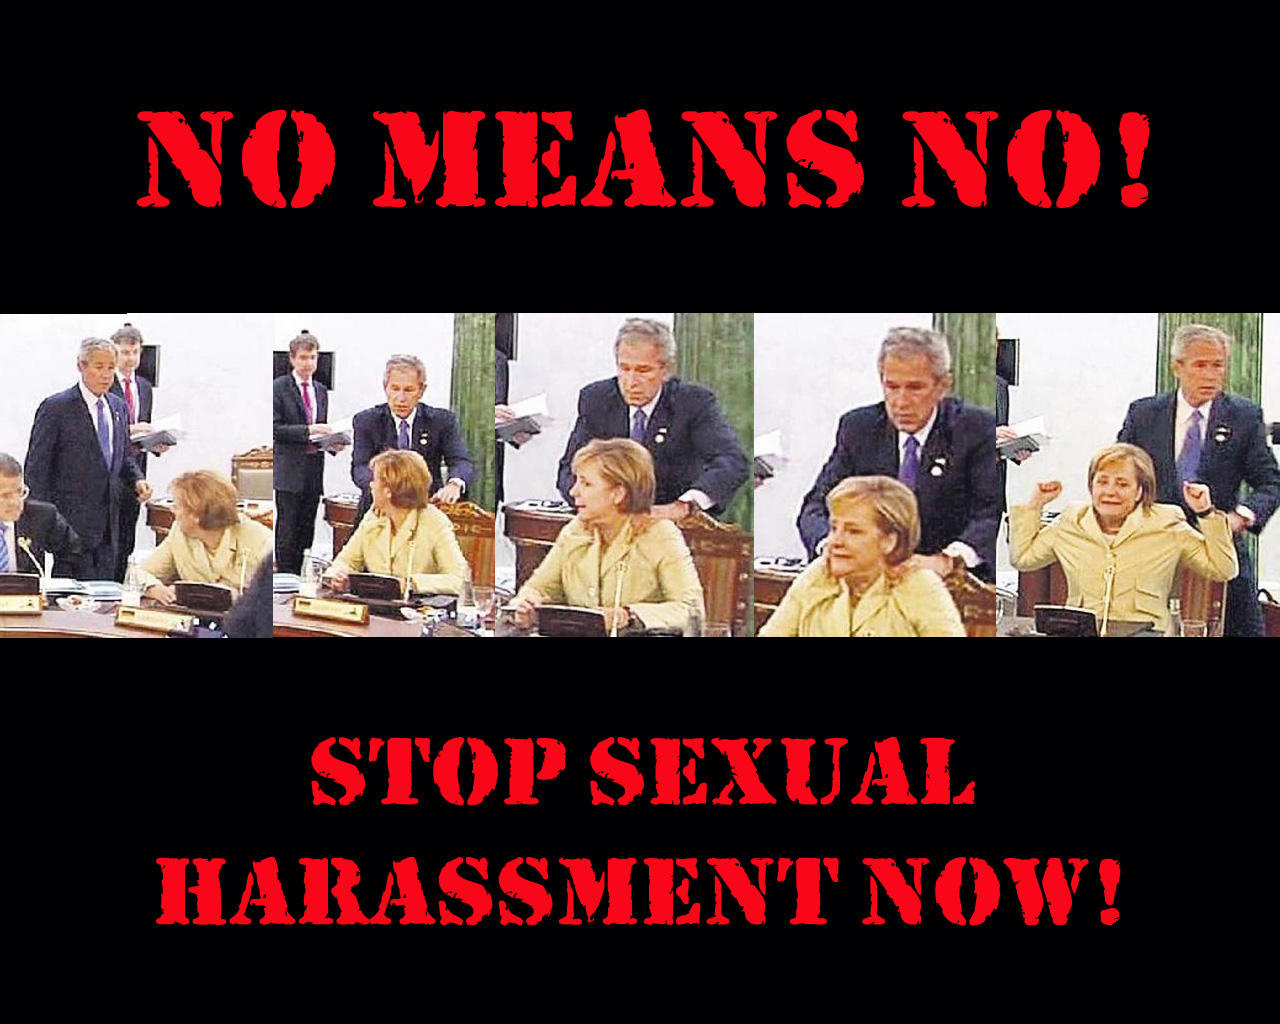 work discrimination publications recognising responding sexual harassment workplace